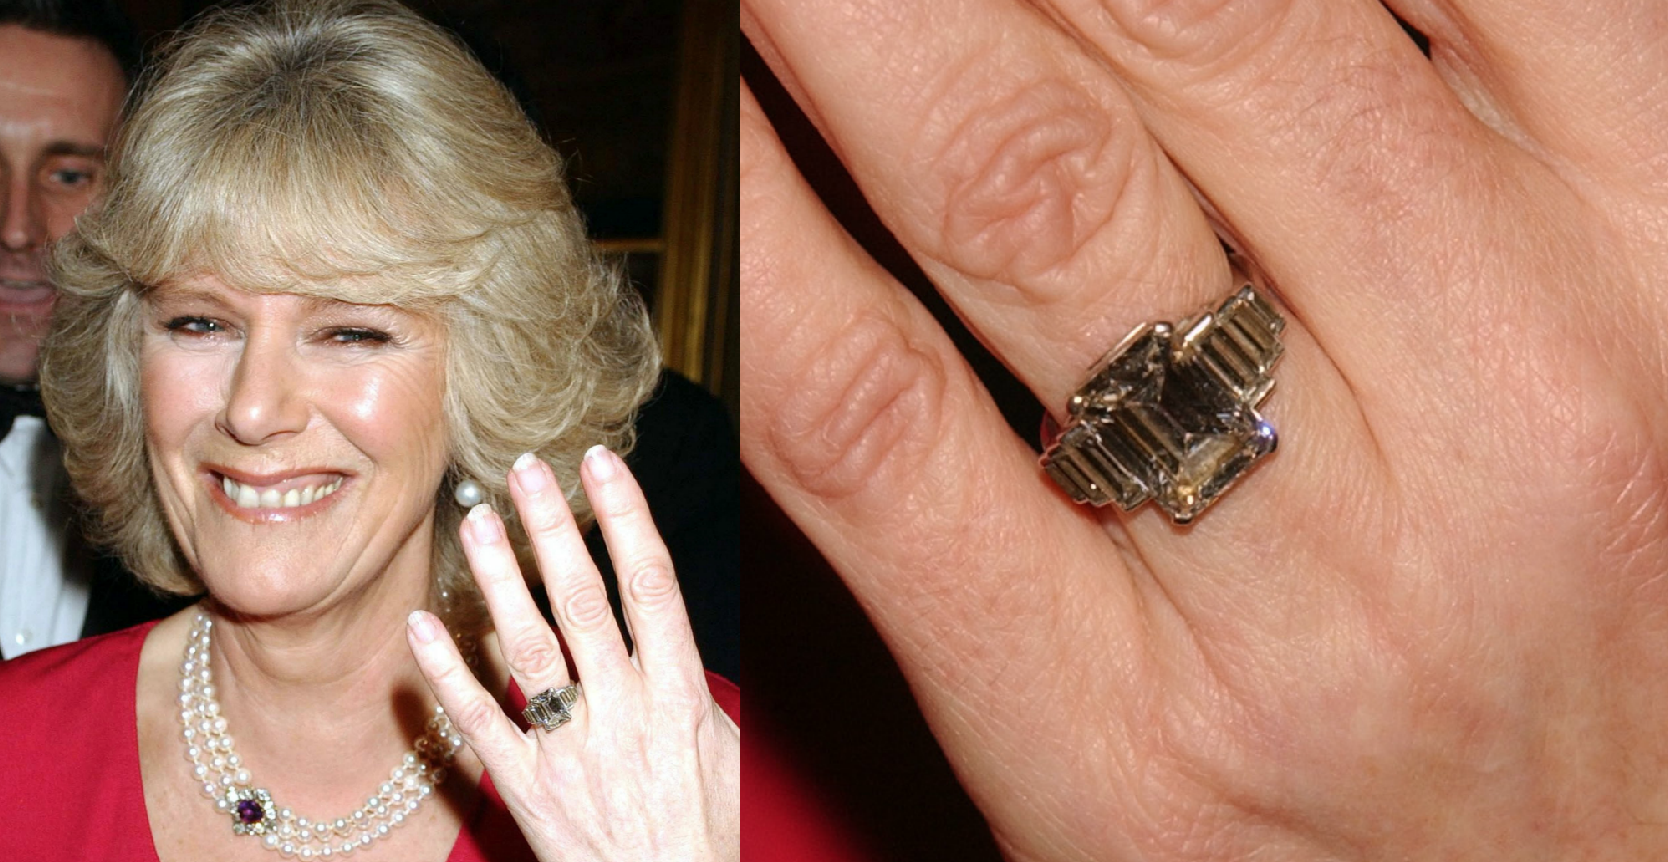 Camilla Parker Bowles' Engagement Ring From Prince Charles Has a Fascinating History